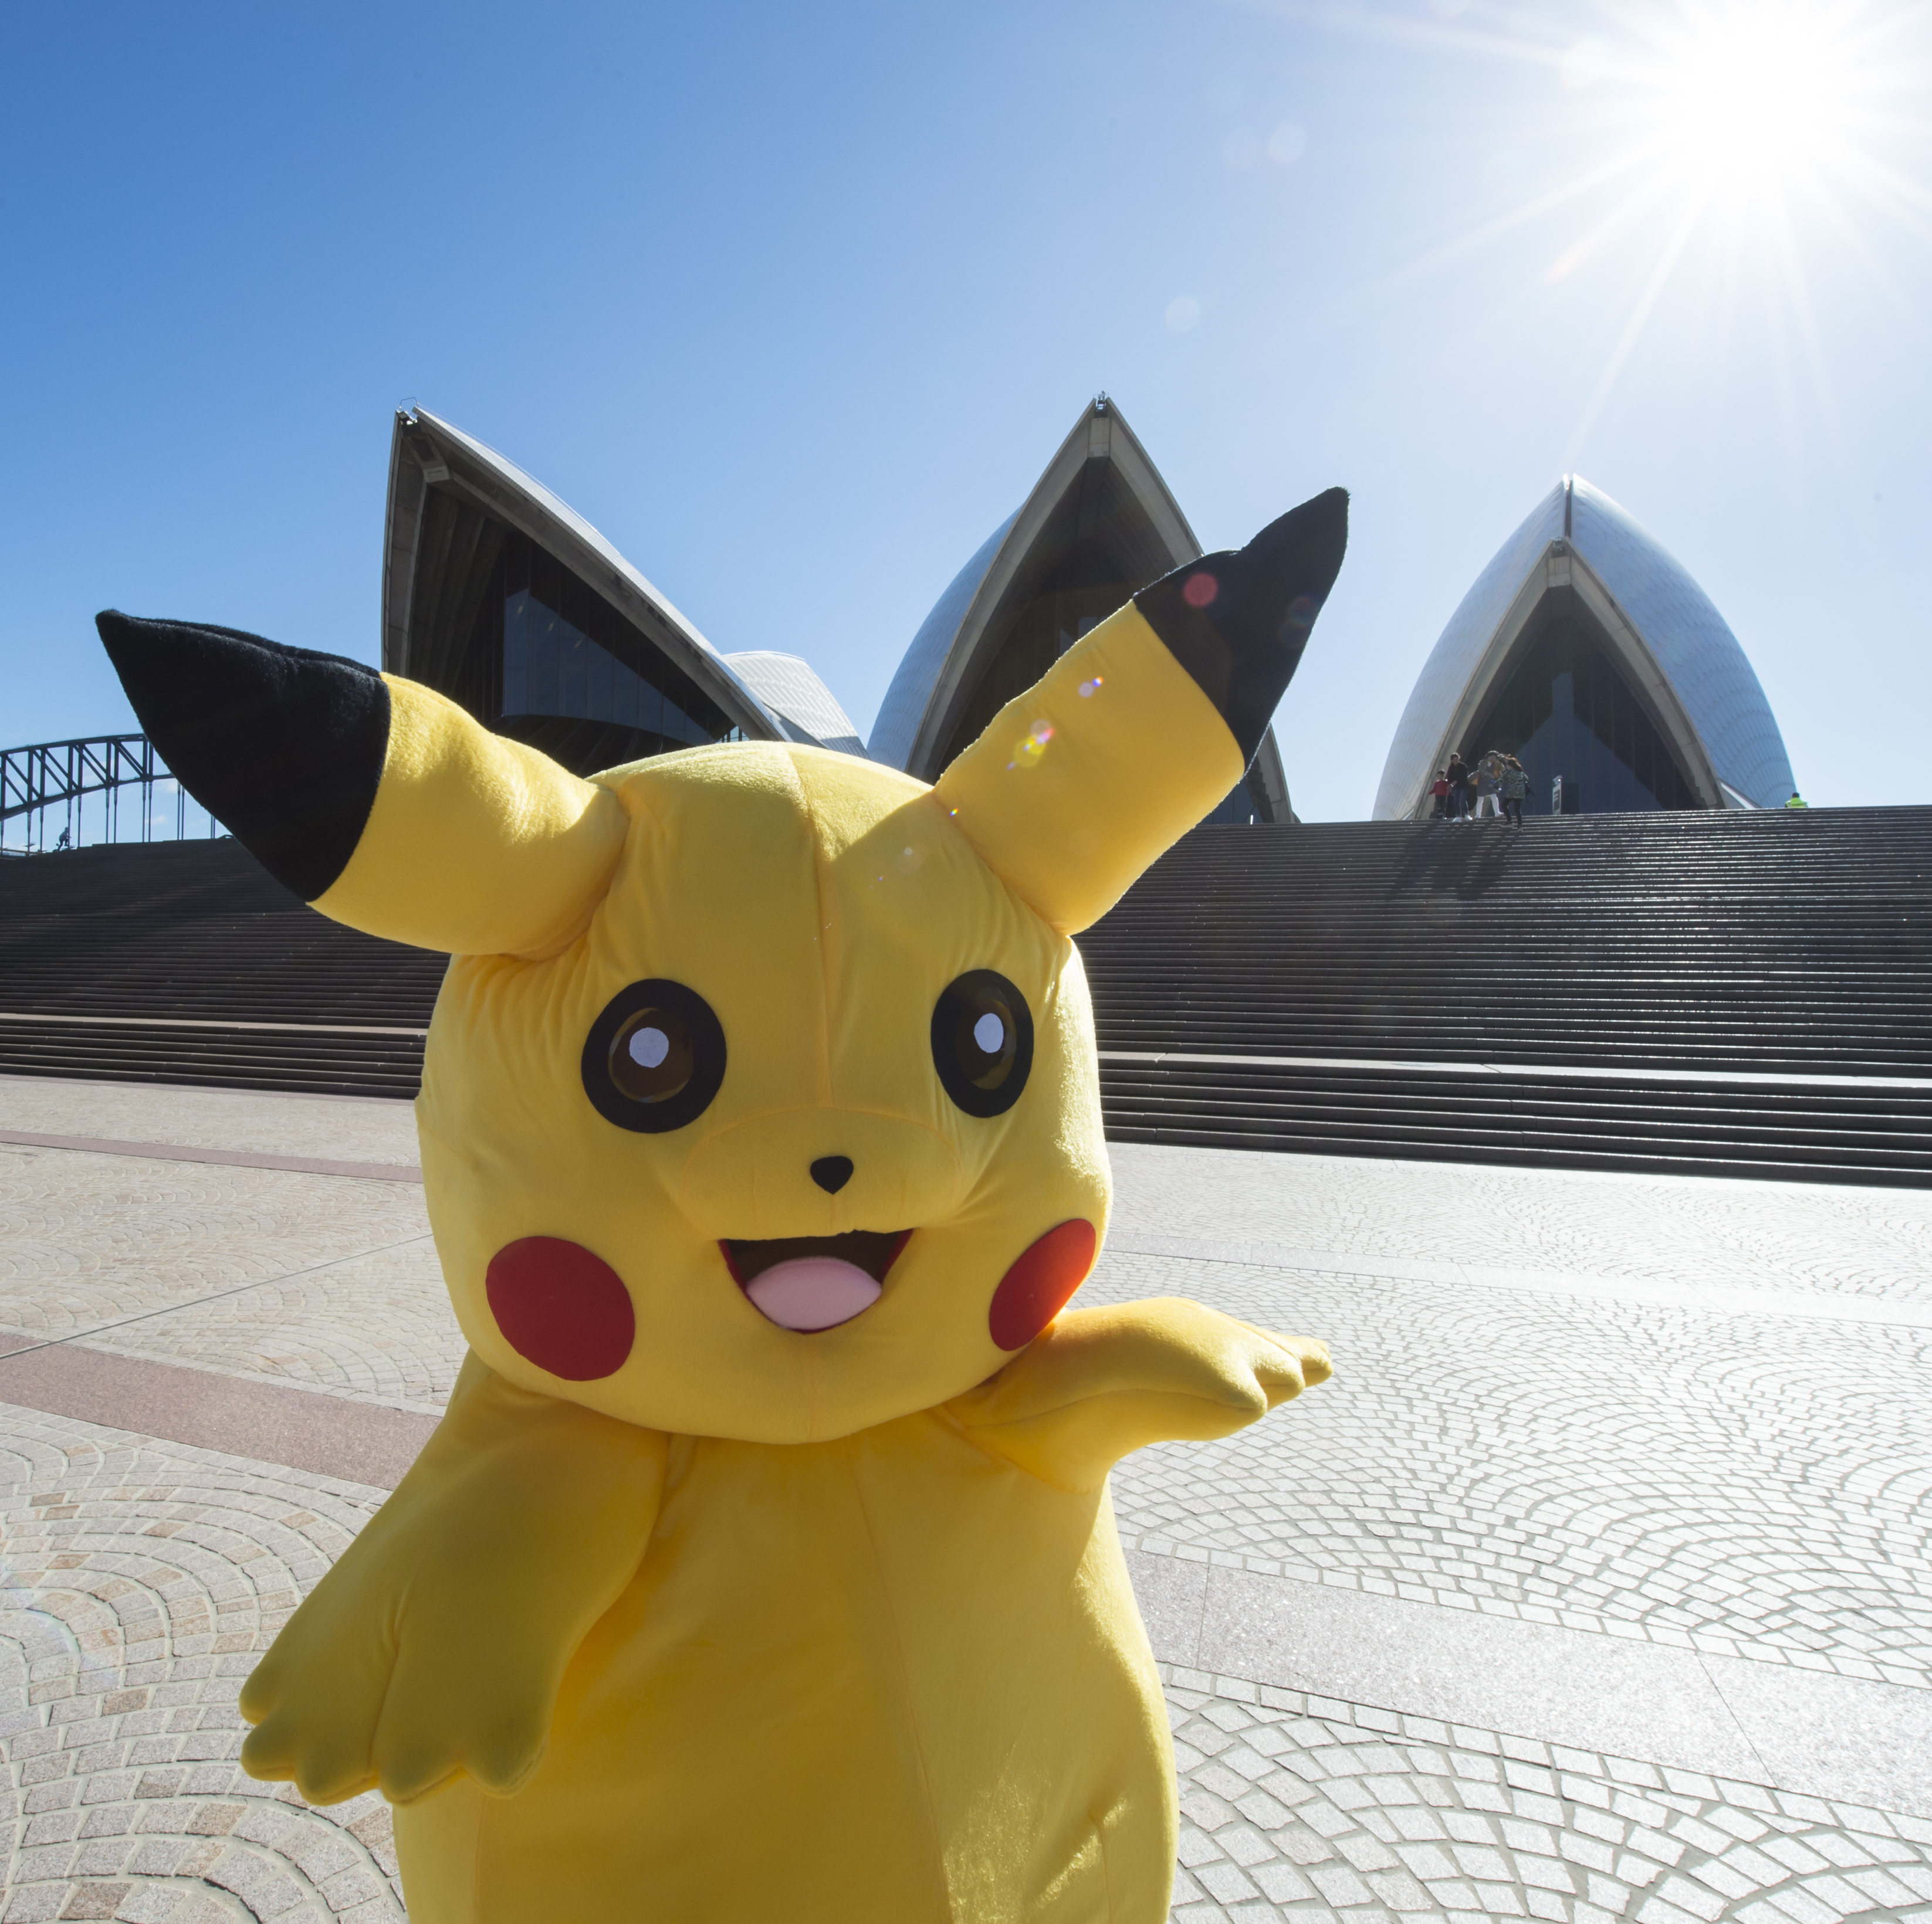 Pokemon GO Fans Chase Giant Pikachu Through Streets Of Sydney